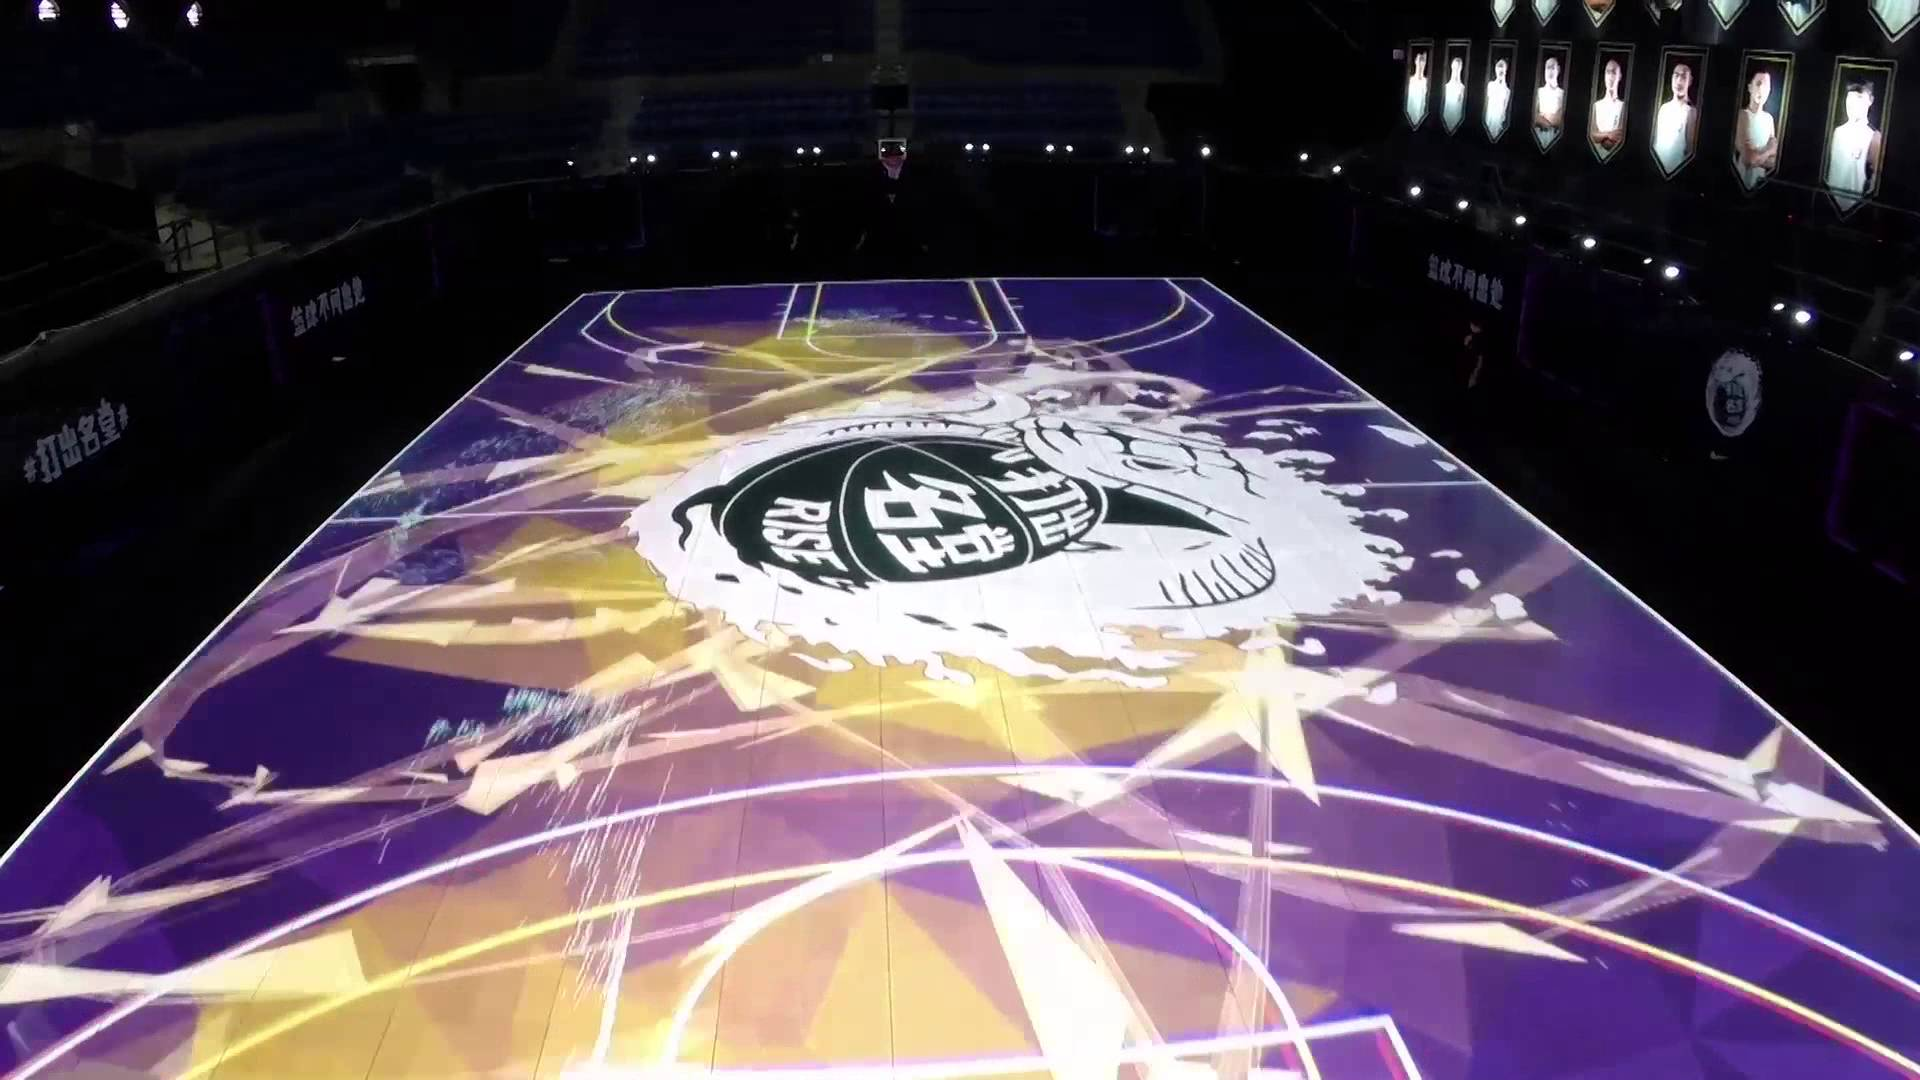 All Led Basketball Court In Shanghai For Kobe Bryant